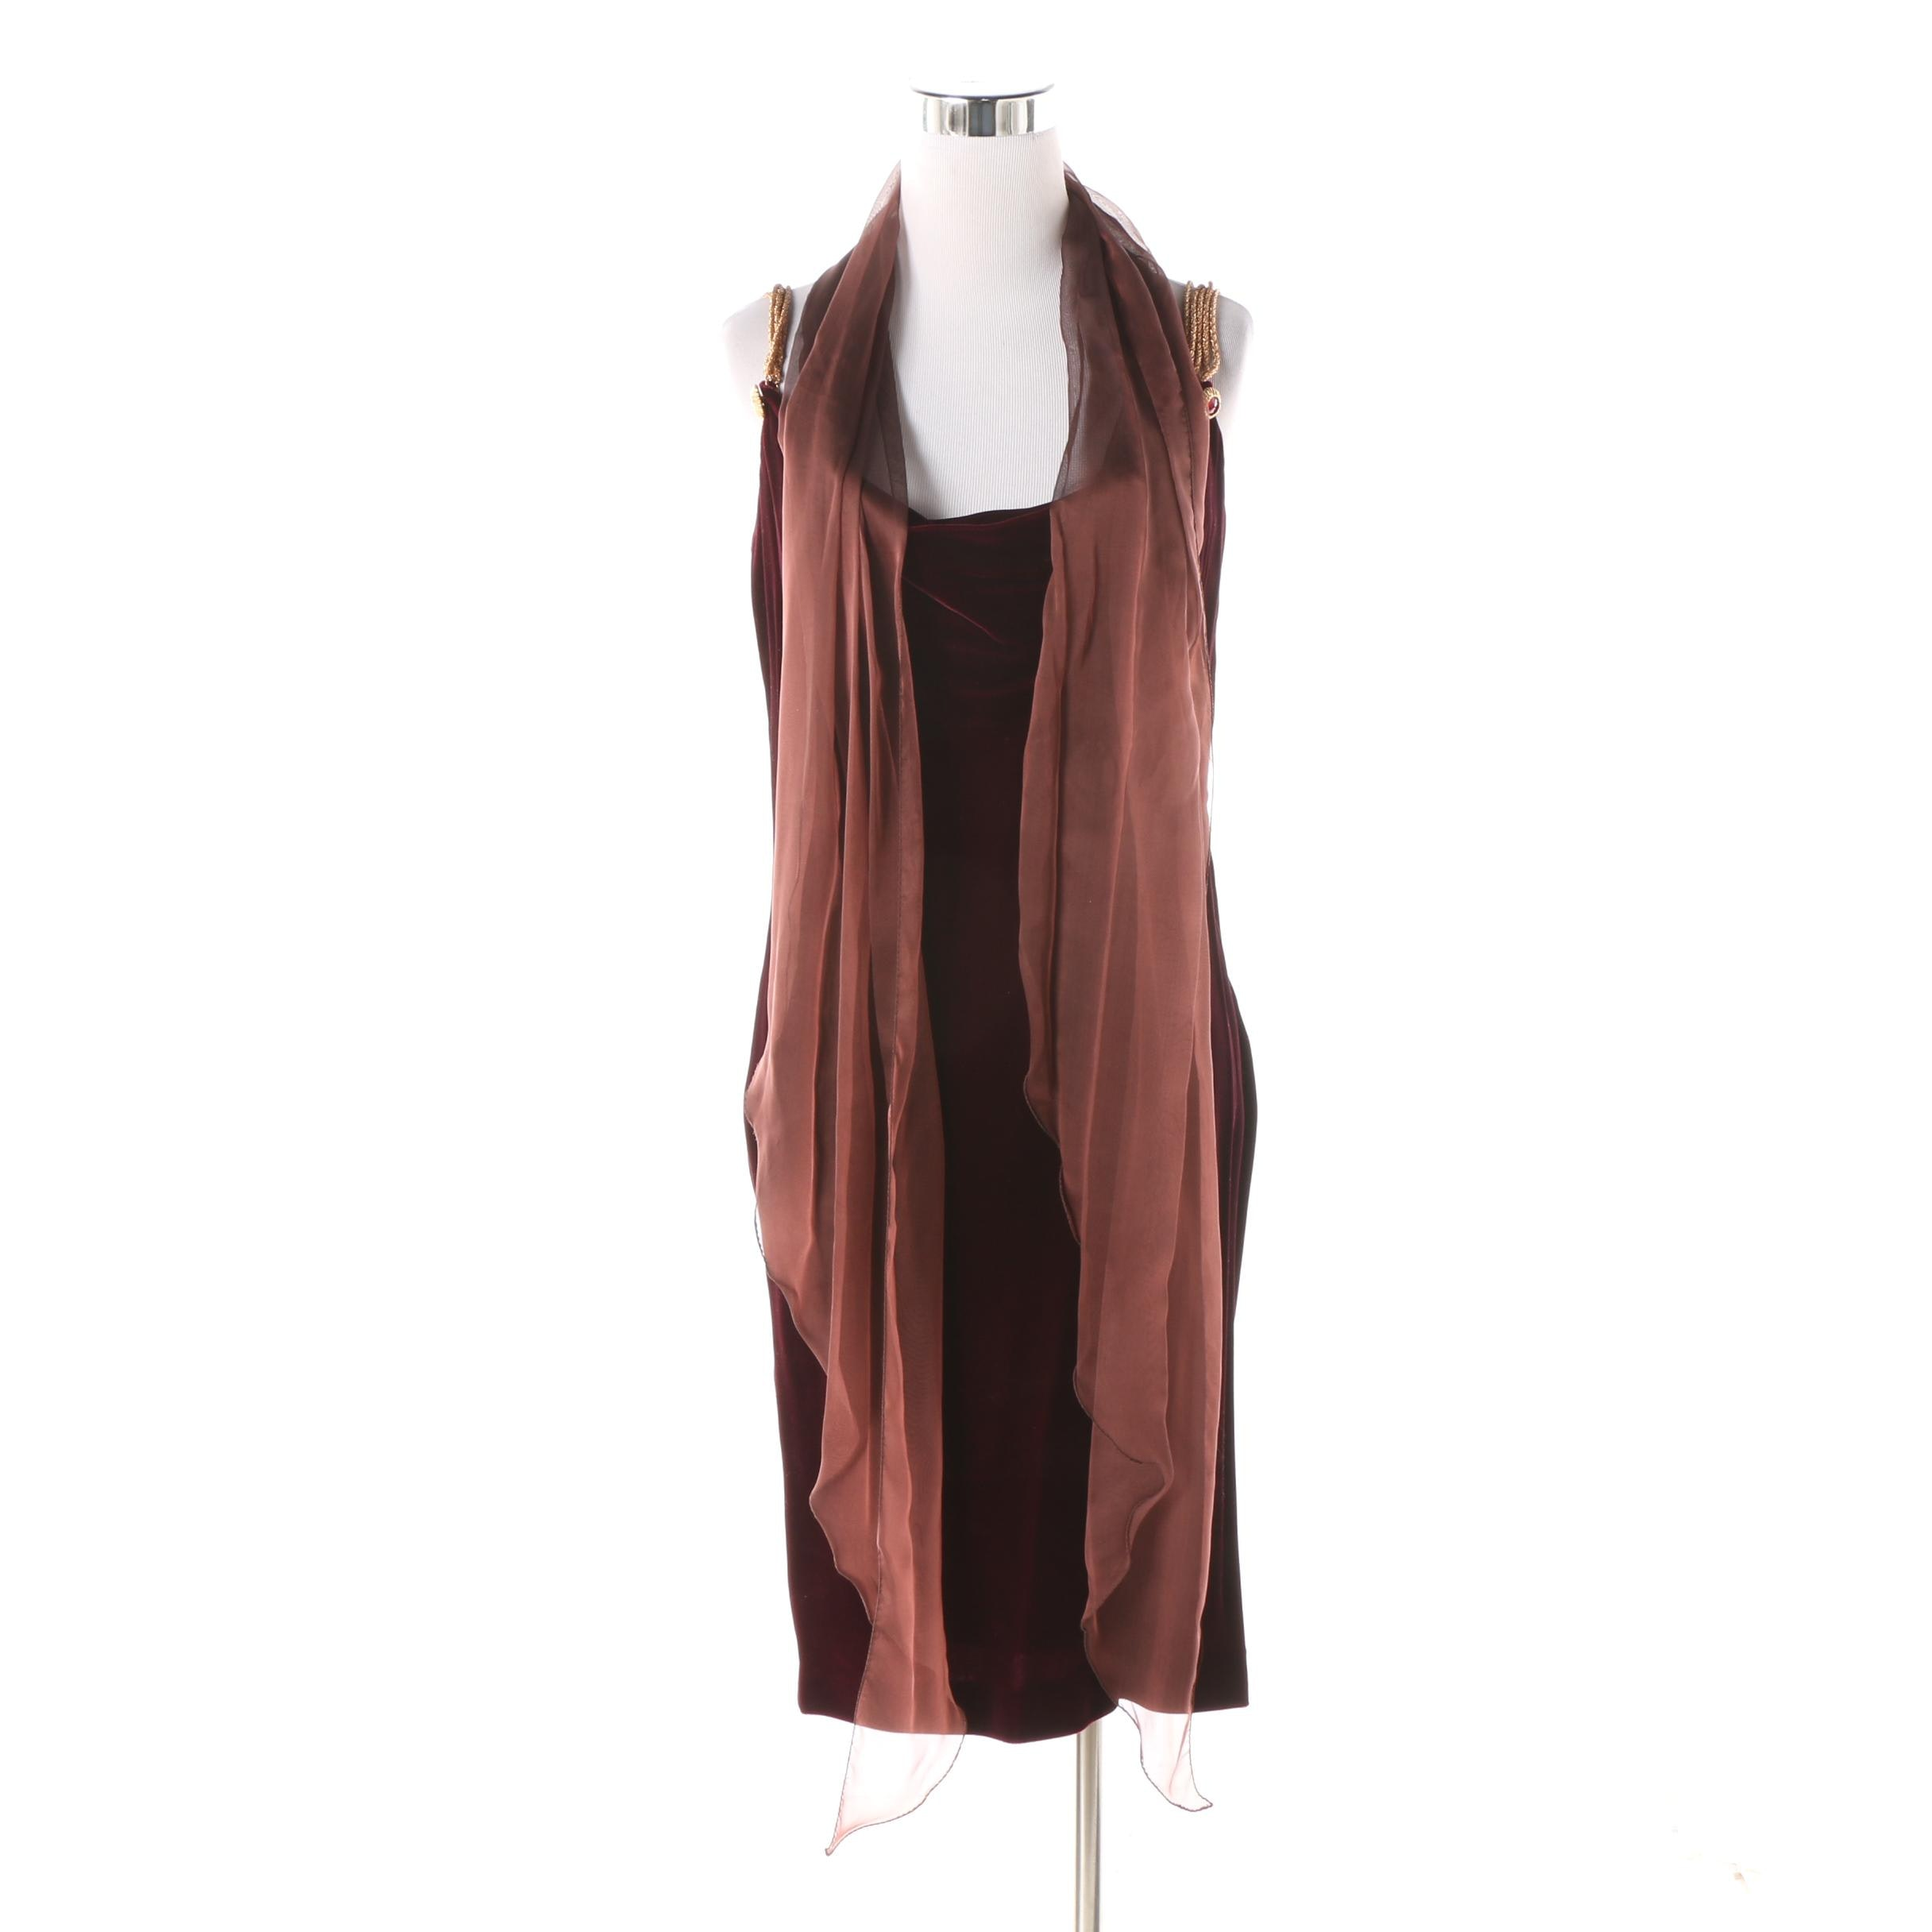 Circa 1980s Anne Klein Maroon Velvet Cocktail Dress and Coordinating Wrap